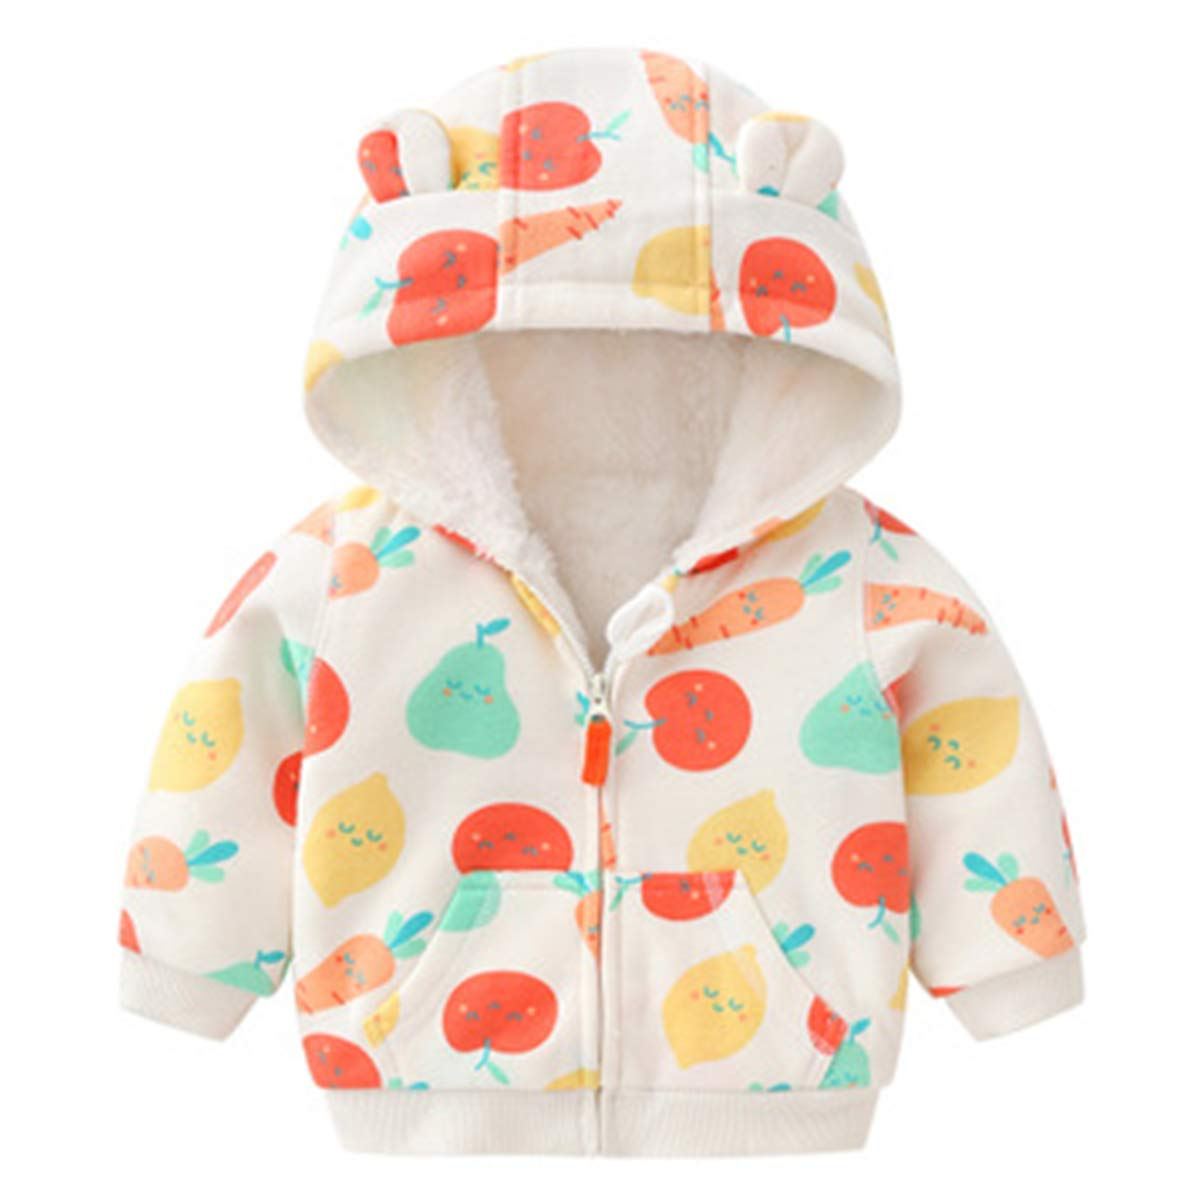 Kanodan Baby Boys Girls Hooded Winter Jacket Warm Sweatshirt Coat Fleece Lined